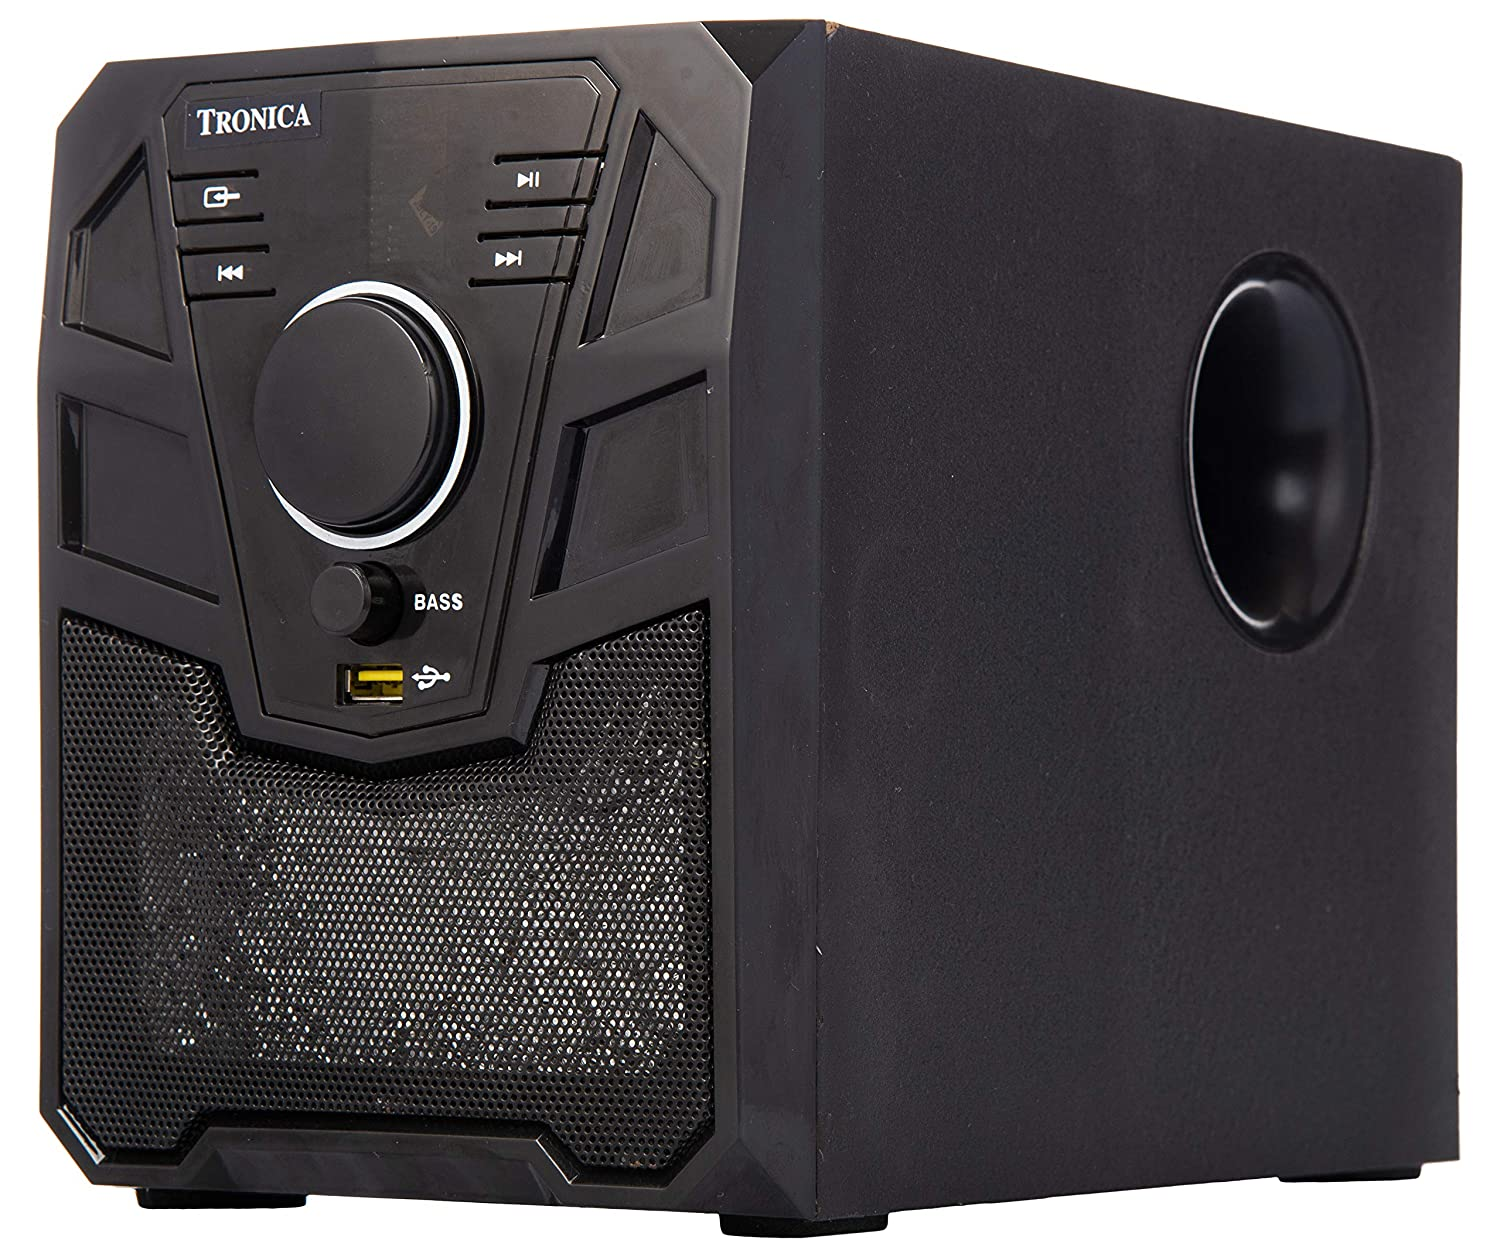 TRONICA Version-2 Atom Series LED Spectrum 5.1 Home Theater System